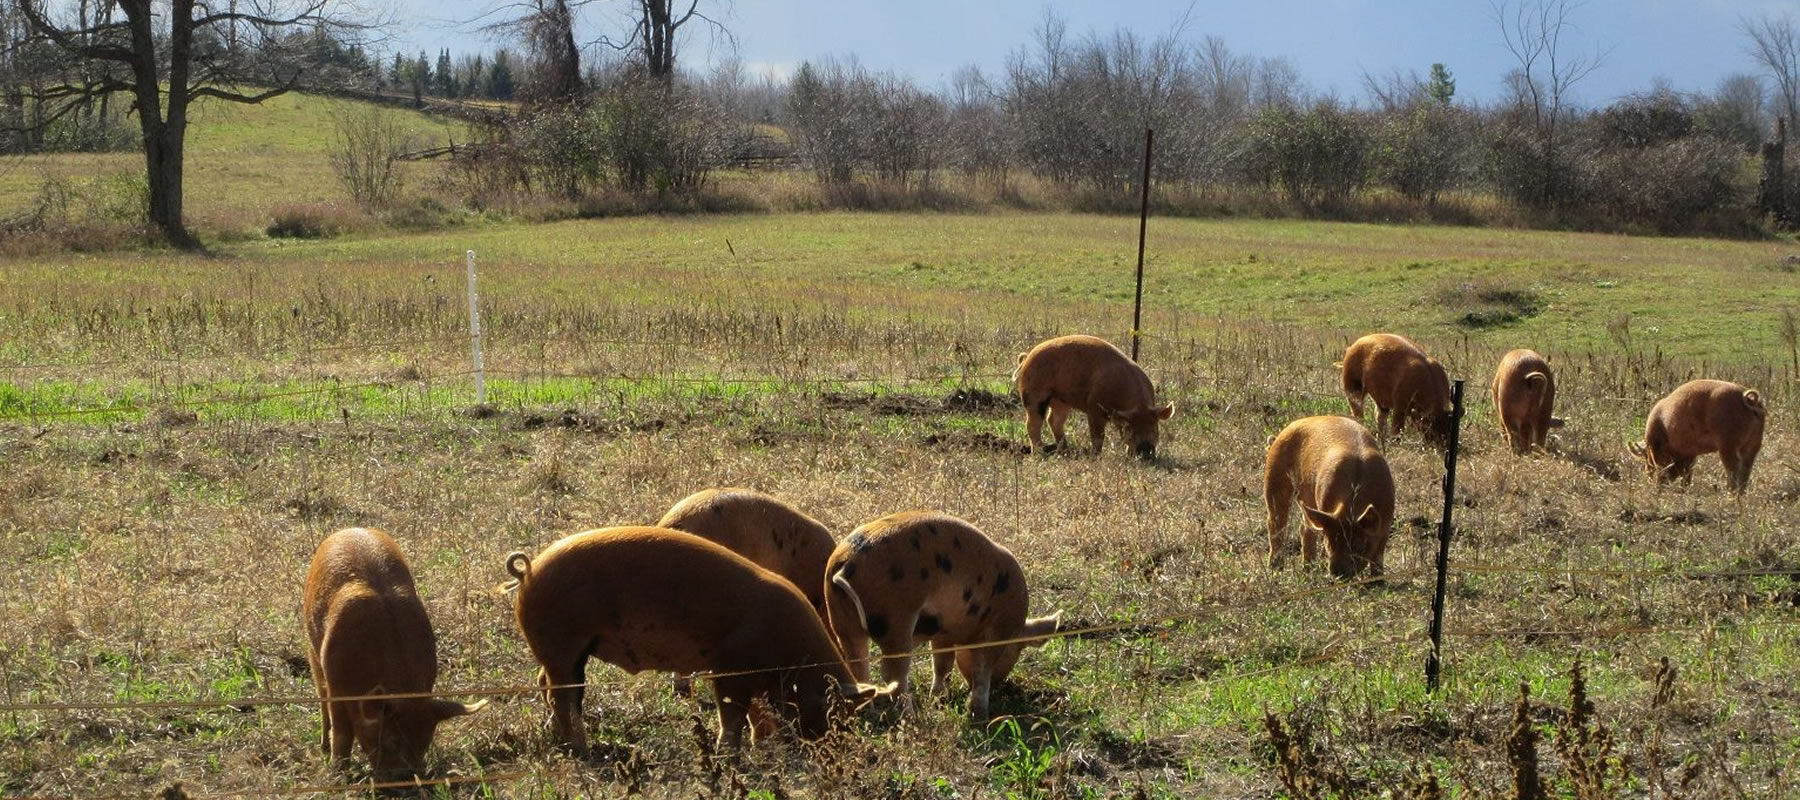 pigs grazing at the farm